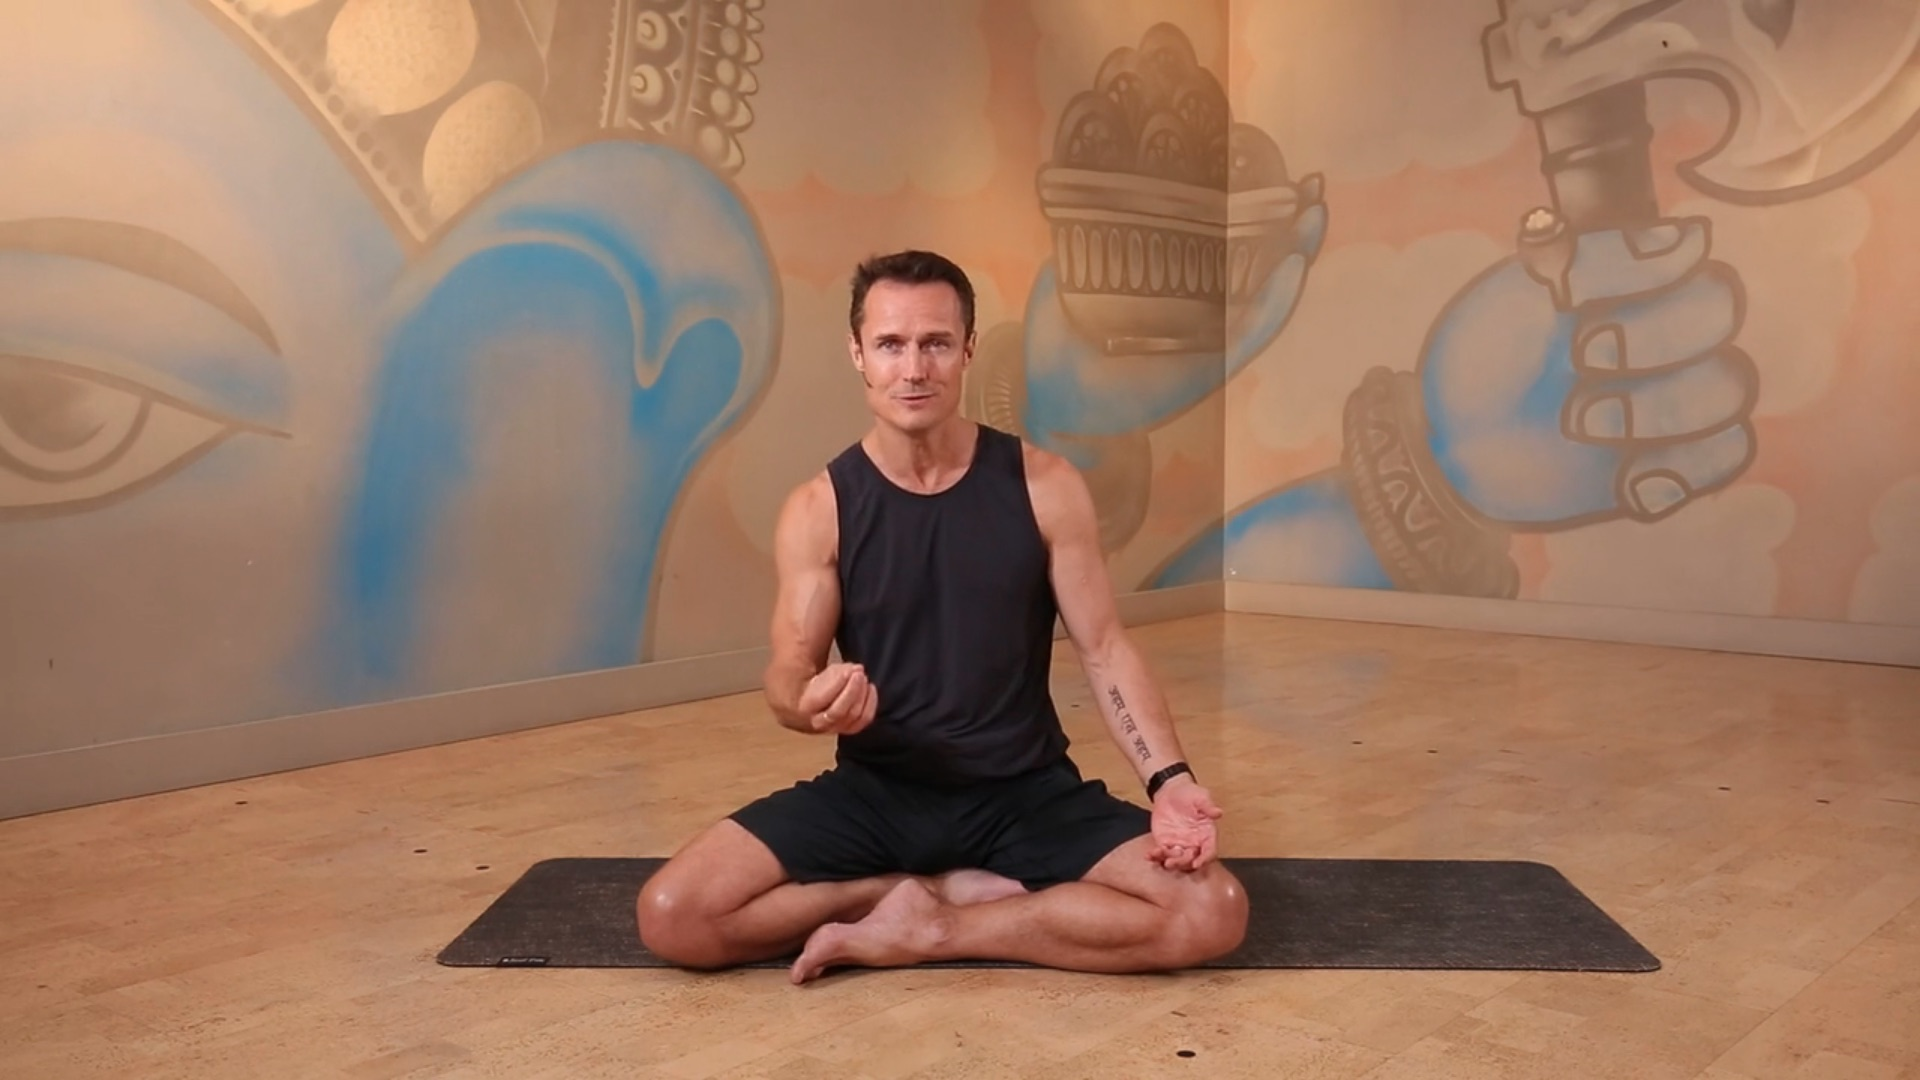 Raise Your Consciousness keenan crisp power living yogaholics yoga online